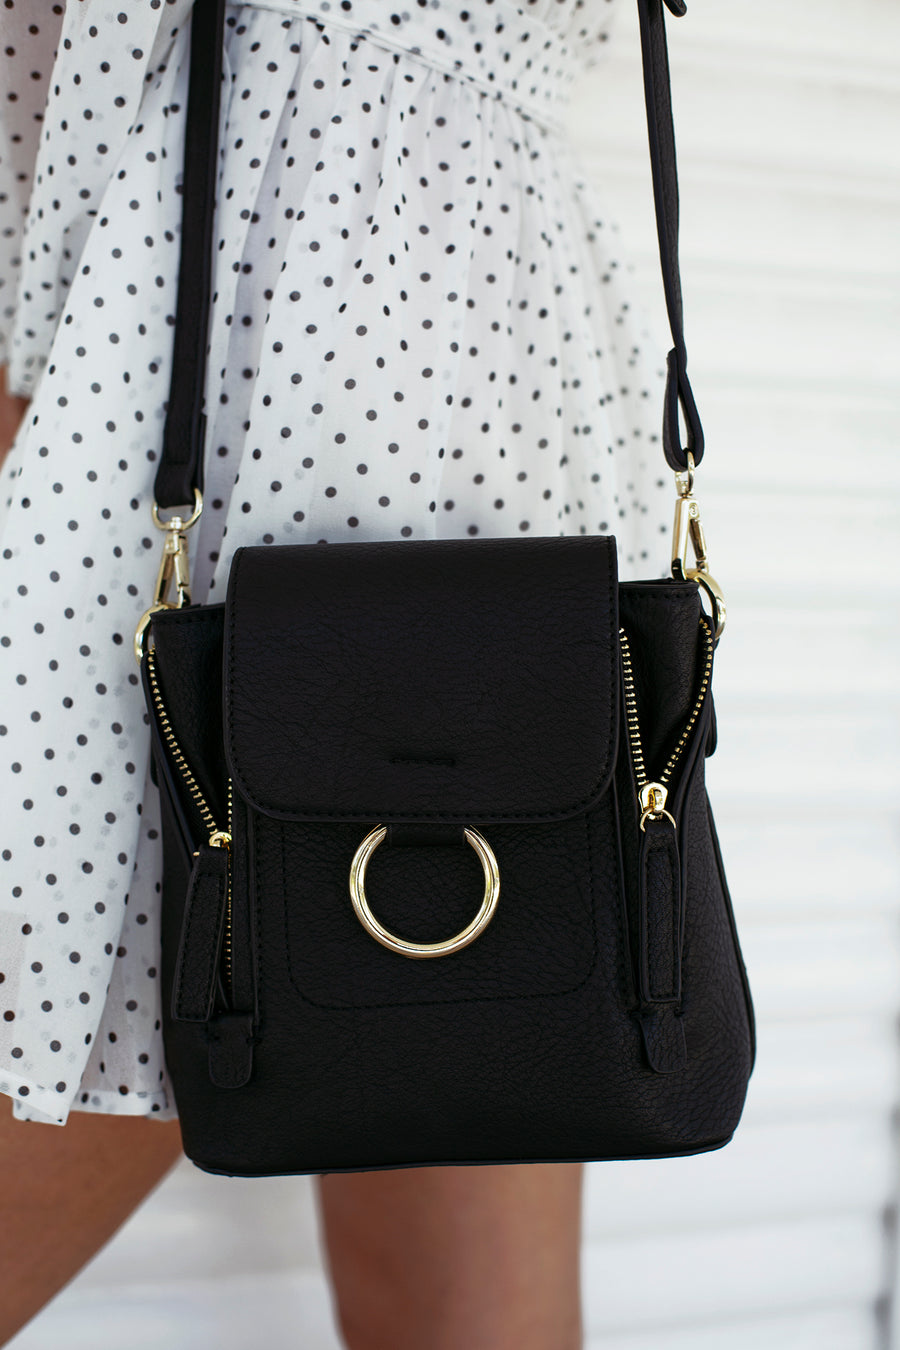 Kiki Bag in Black